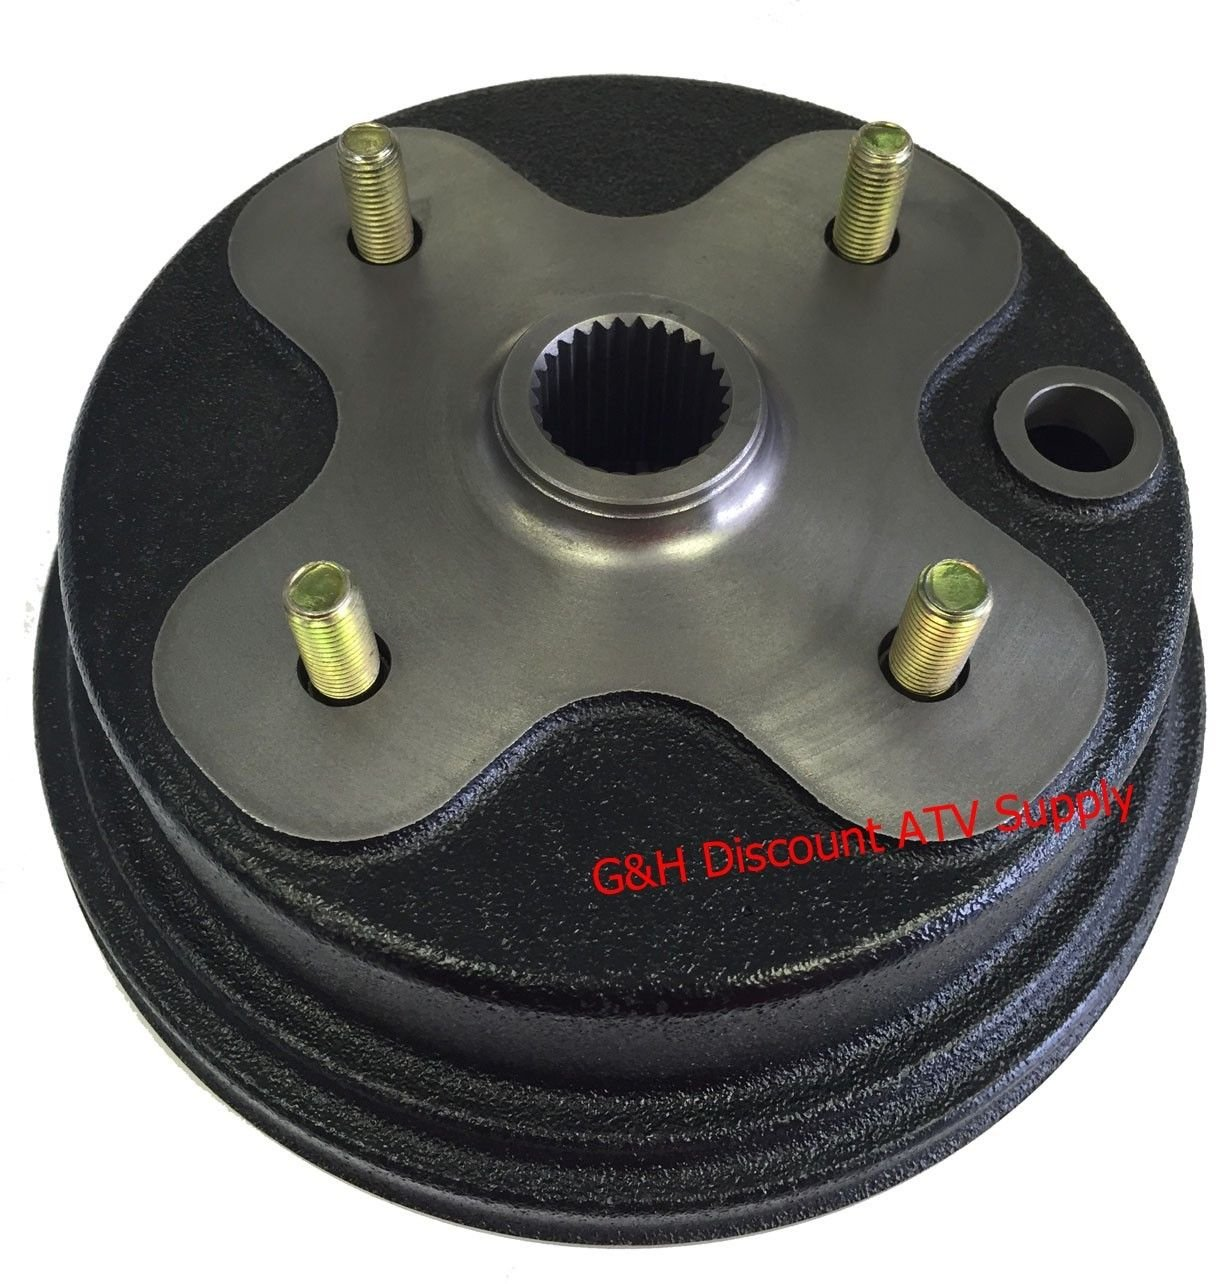 QUALITY FRONT OR REAR Brake Drum Hub for Yamaha YFB 250 Timberwolf 2x4 4X4 (replaces OE 3HN-25111-02-00) Wide Open